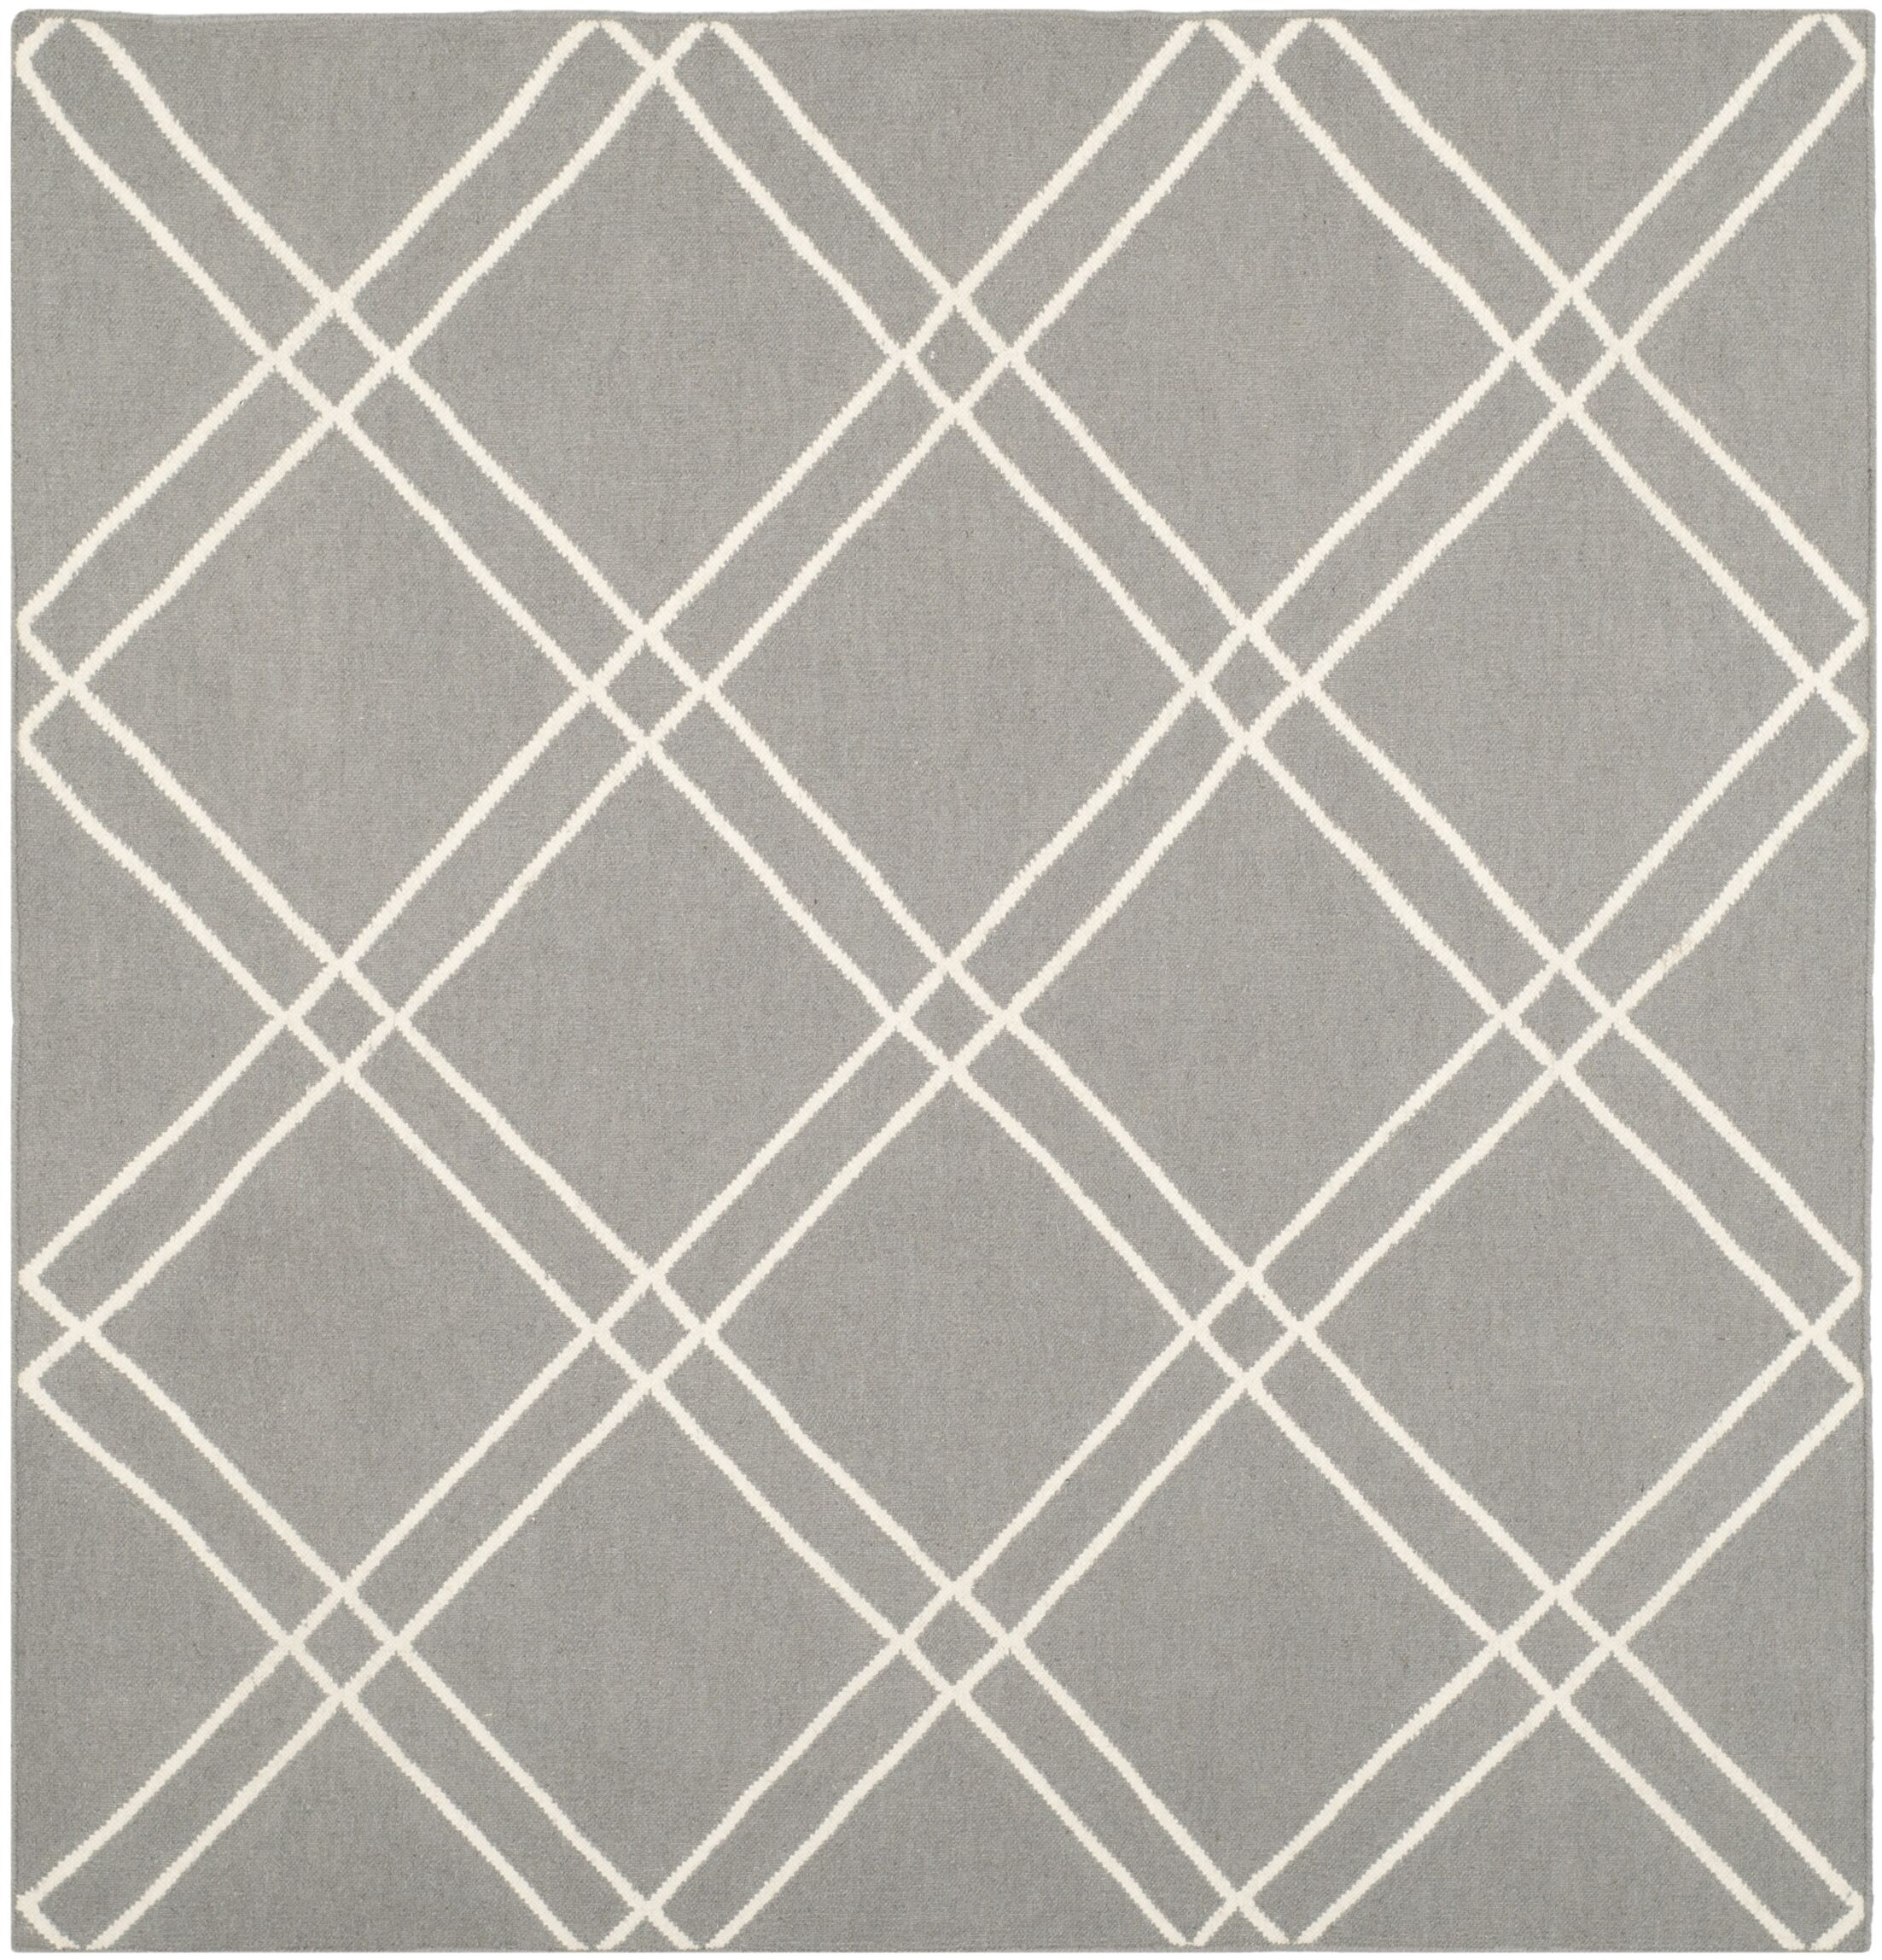 Dhurries Grey/Ivory Area Rug Rug Size: Square 6'